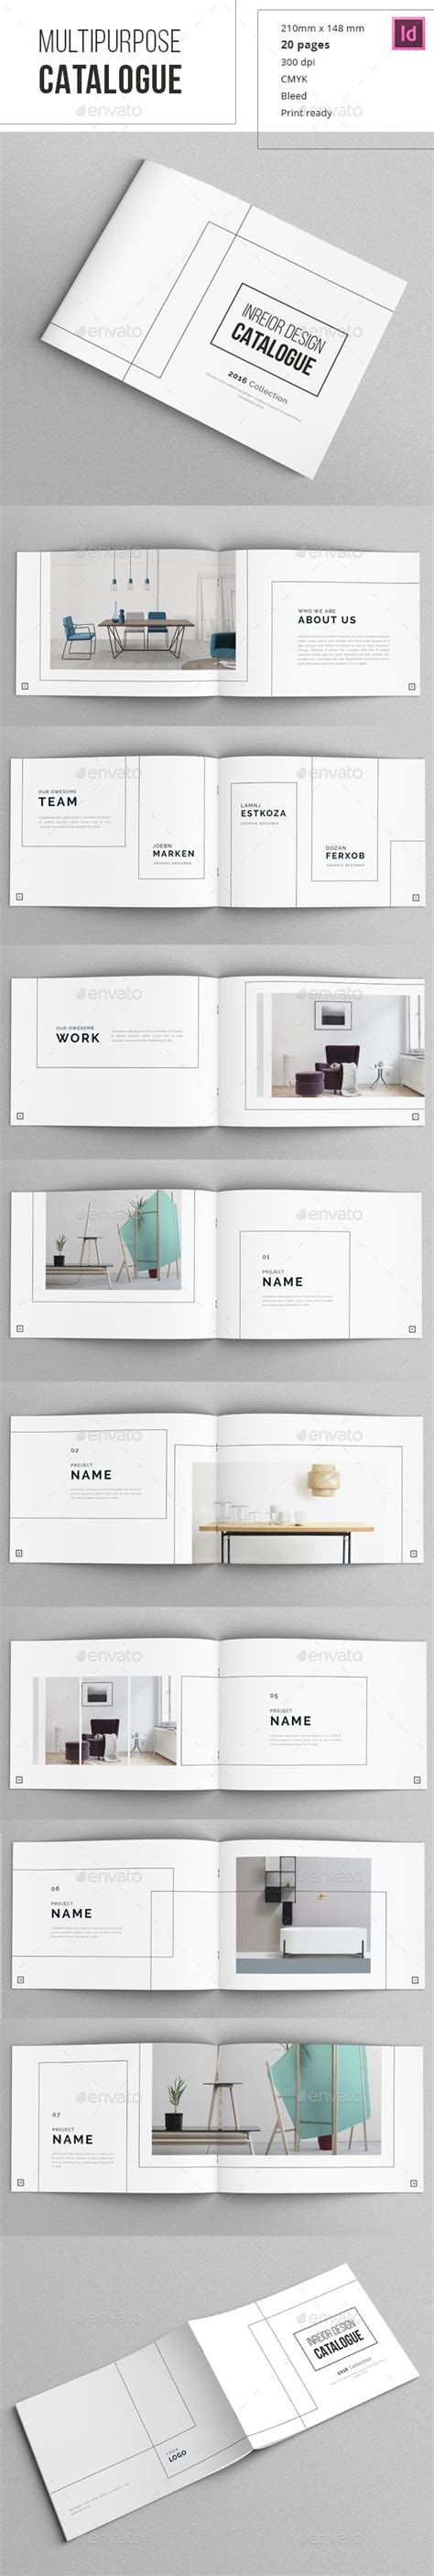 minimal interior design catalog by abradesign dribbble minimal indesign catalogue the shape typography and